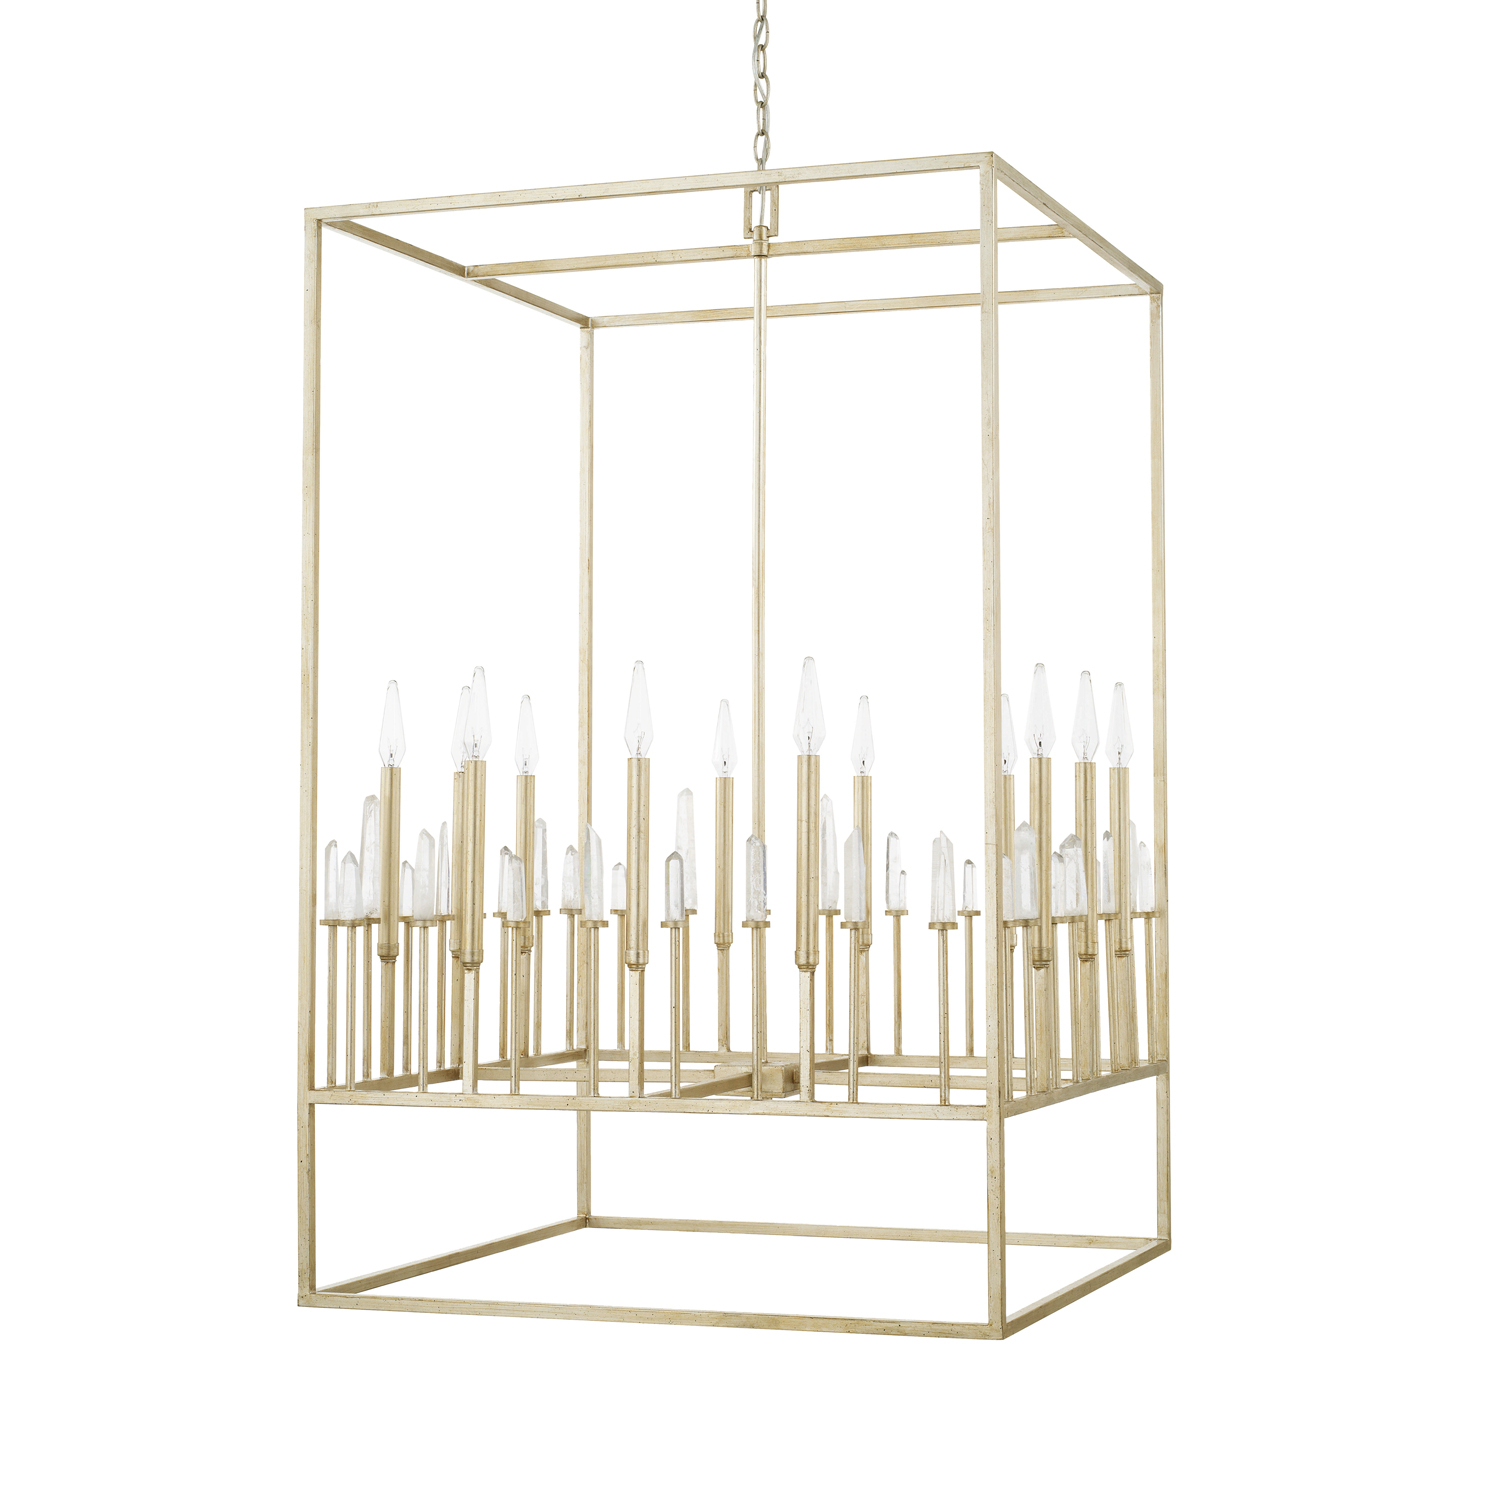 12 Light Foyer Chandelier from the Adira collection by Capital Lighting 528201WG